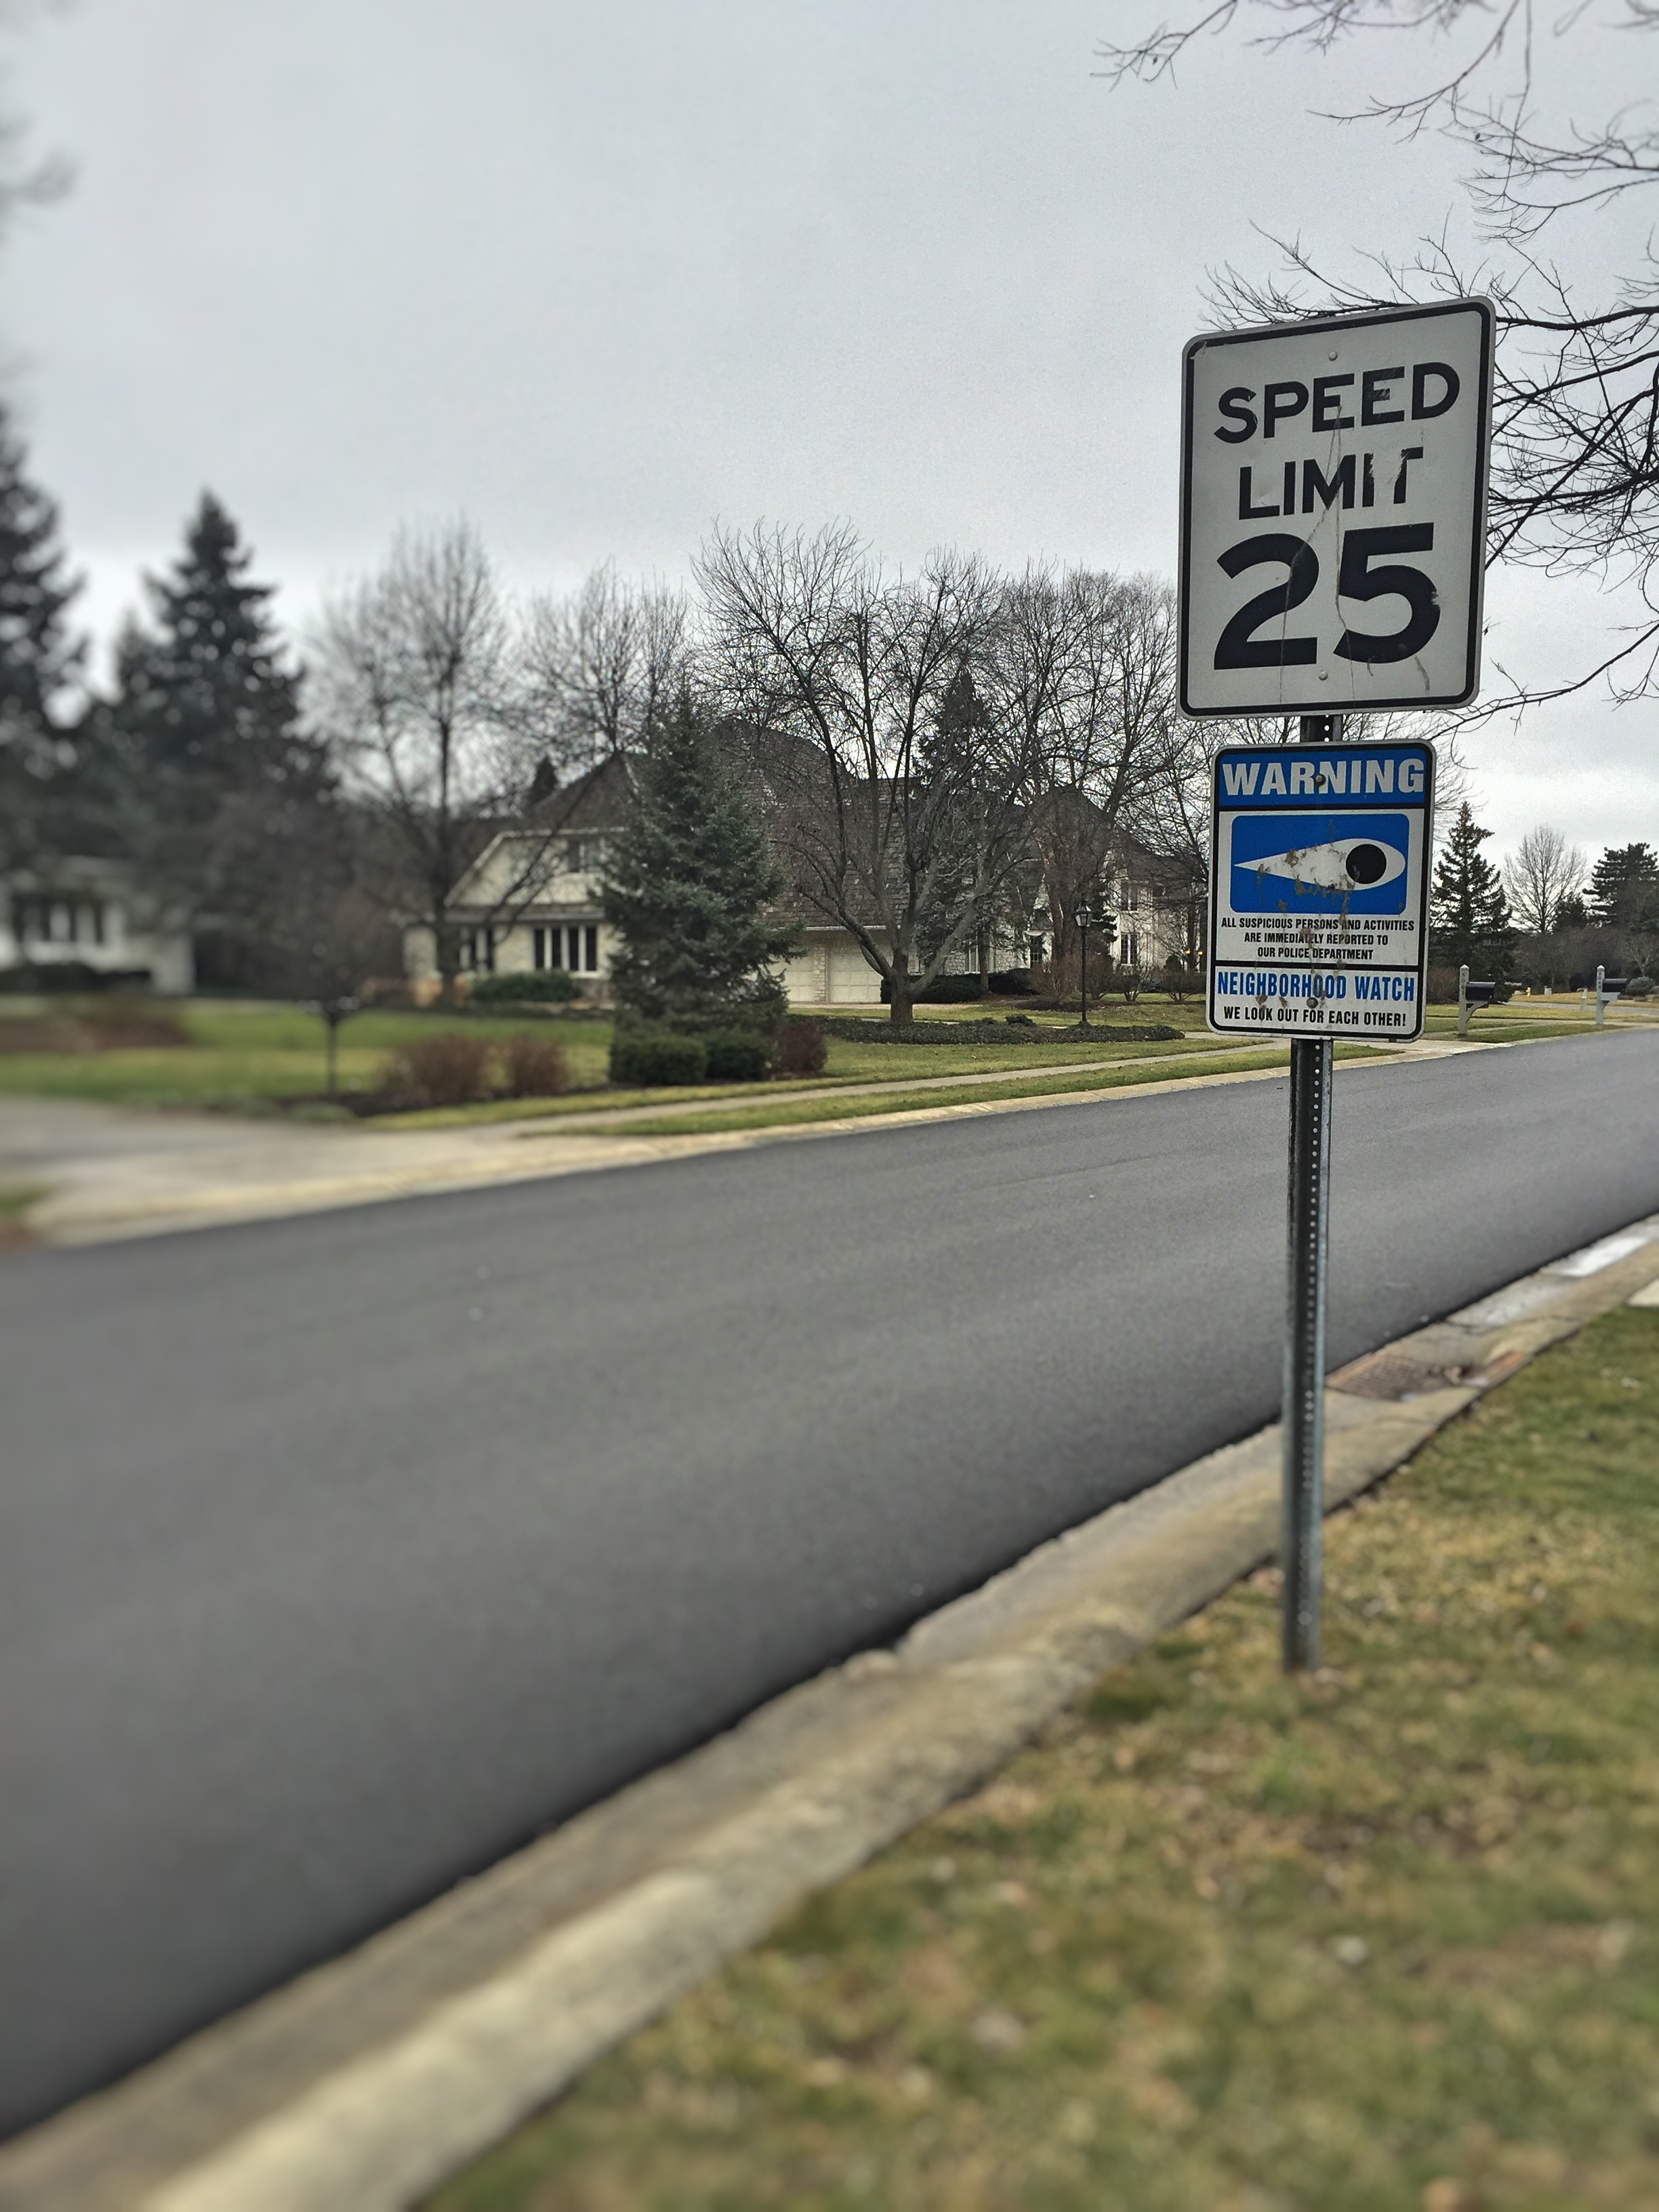 Speed Limits are Meant to be Obeyed